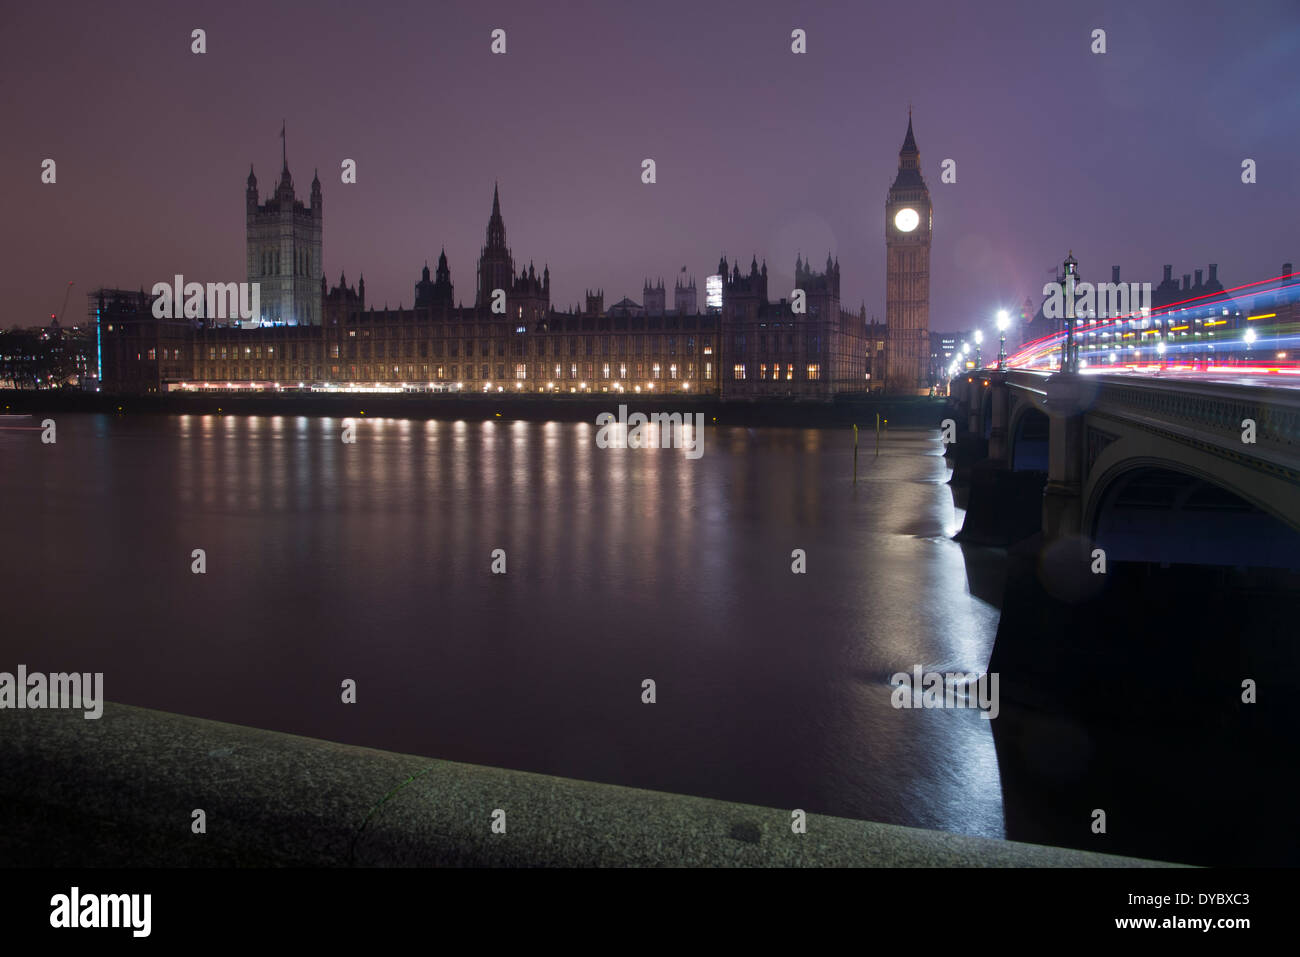 The Houses of Parliament, London - Palace of Westminster, Big Ben and light trails on Westminster Bridge by early Stock Photo